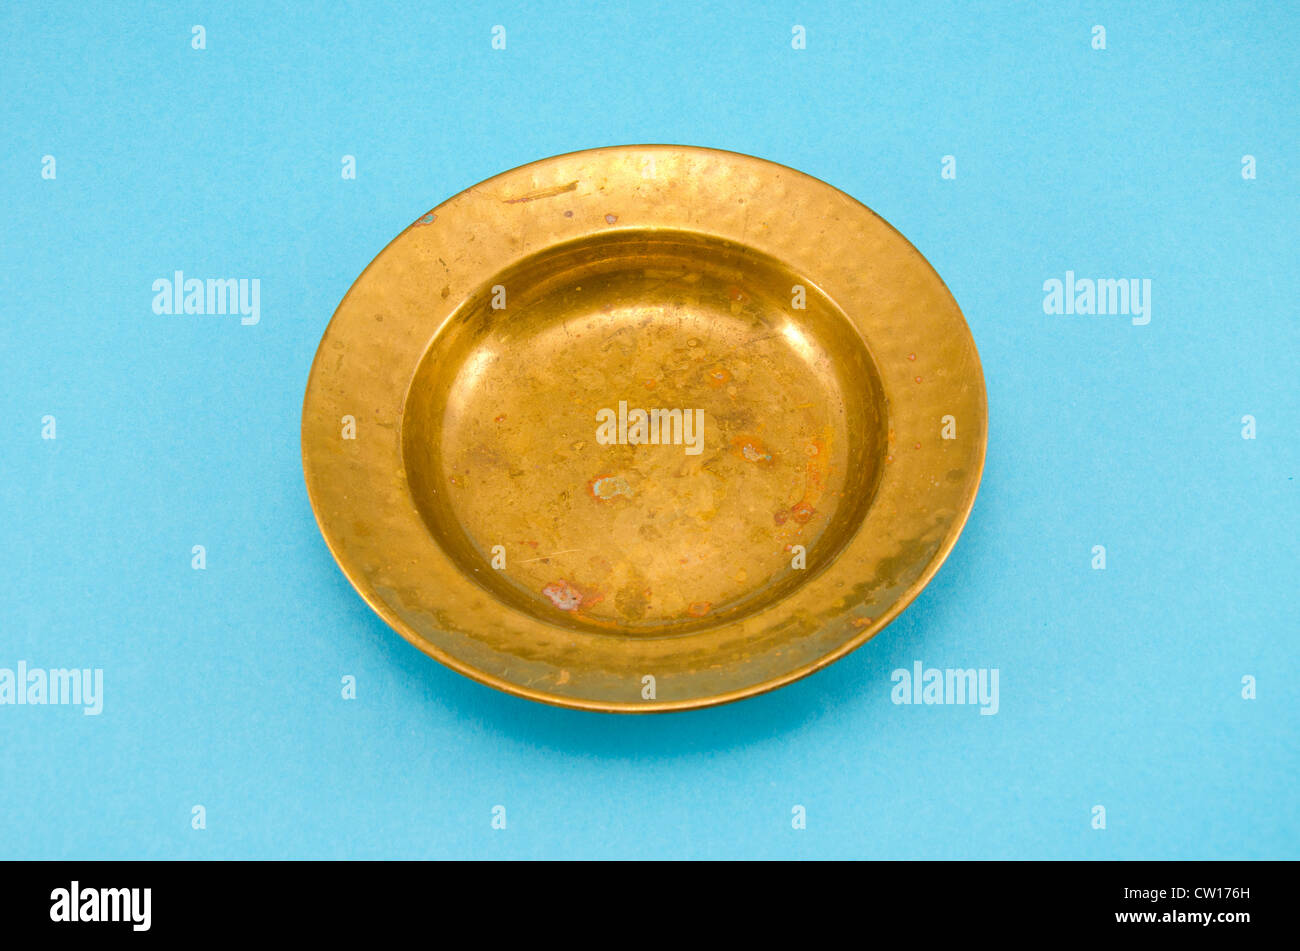 ancient and empty brass plate on azure background - Stock Image